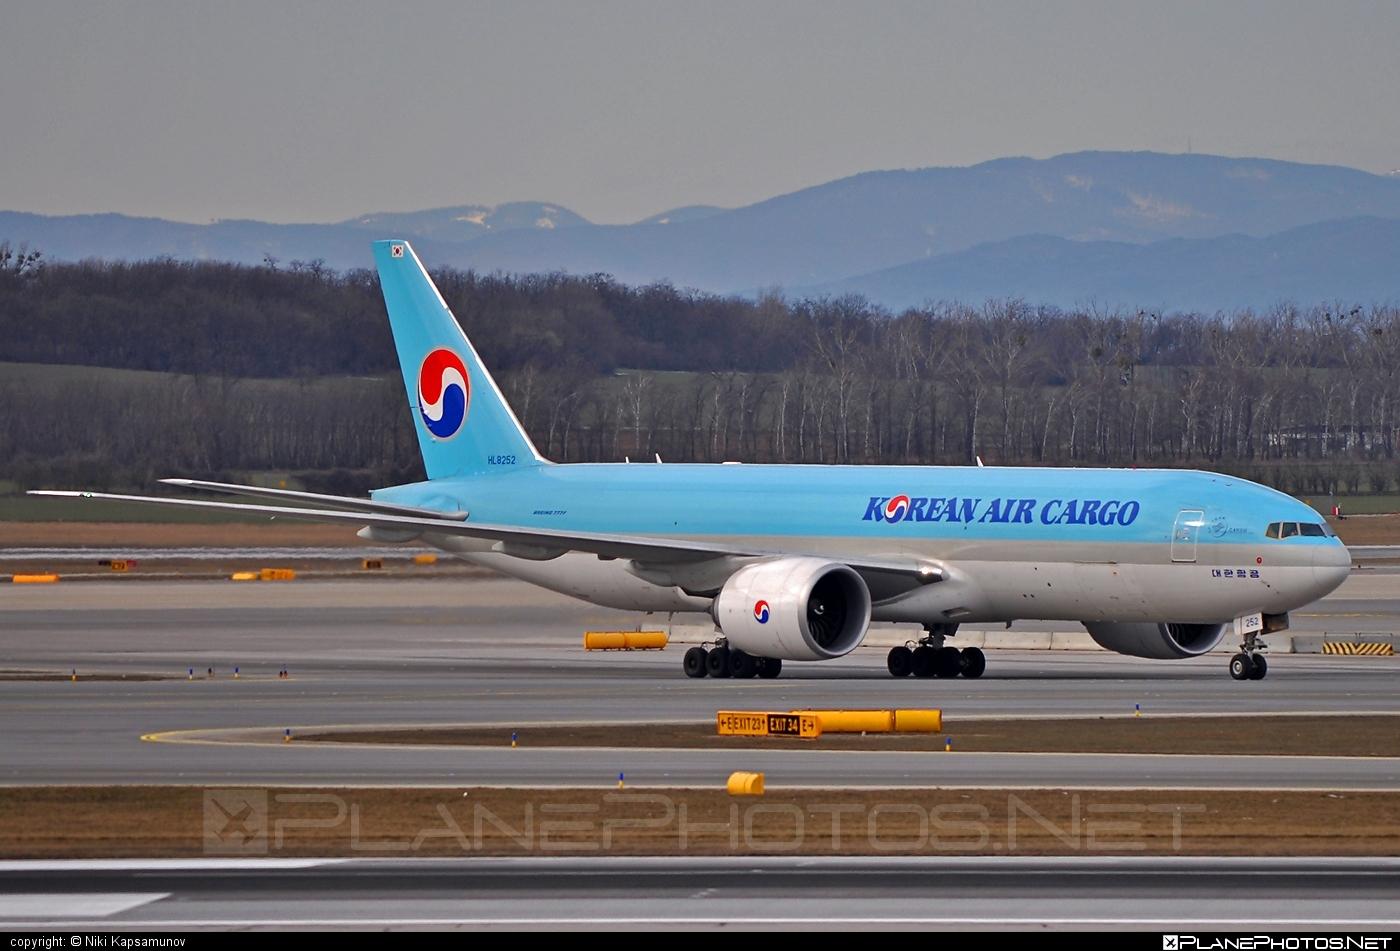 Boeing 777F - HL8252 operated by Korean Air Cargo #b777 #b777f #b777freighter #boeing #boeing777 #koreanair #koreanaircargo #tripleseven